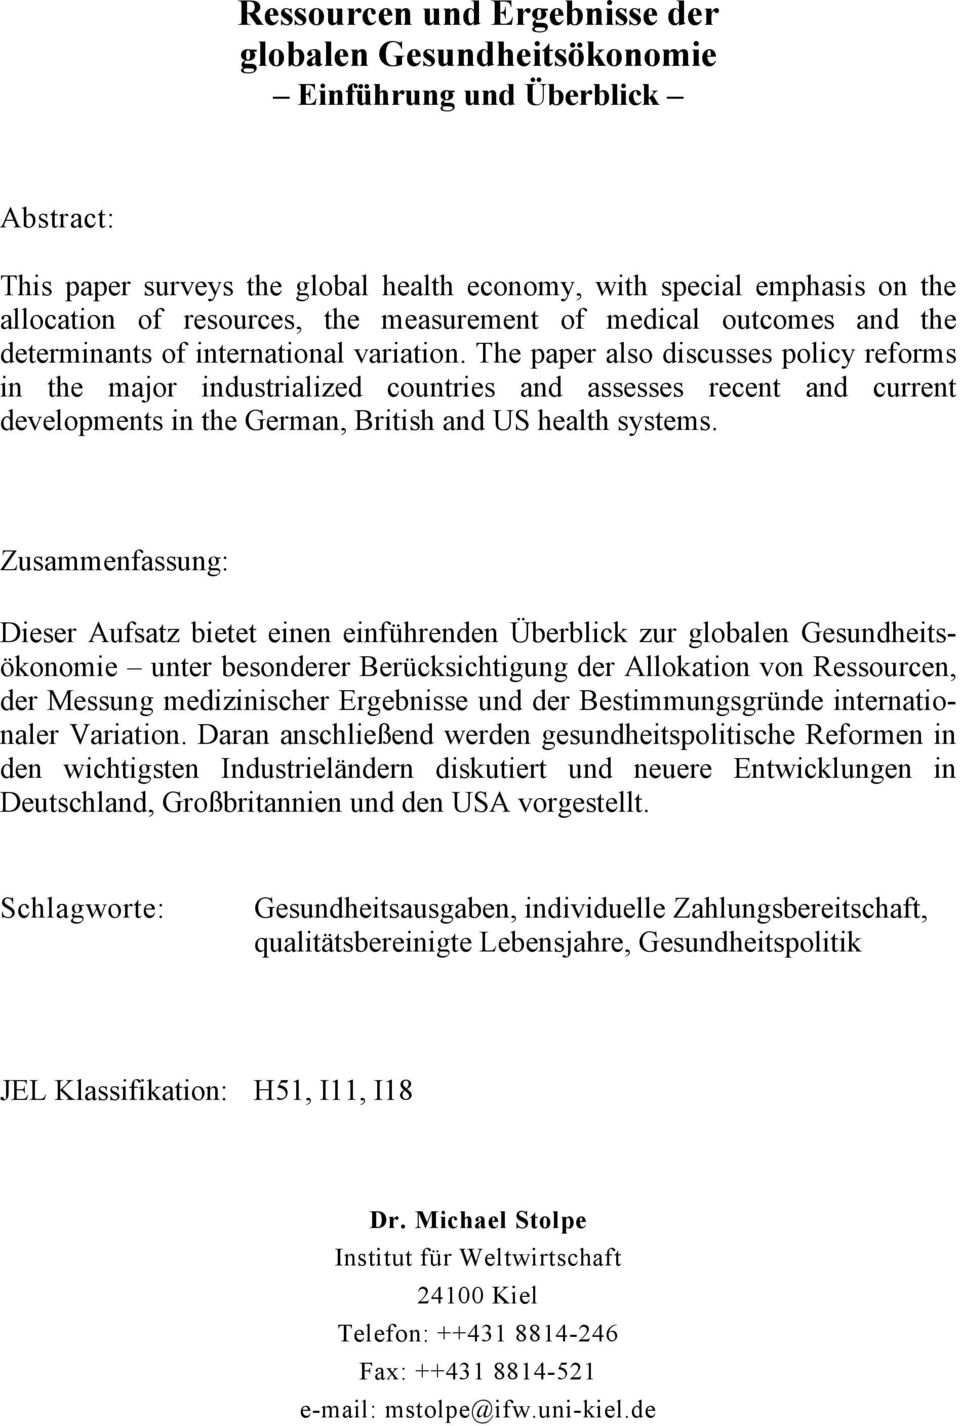 The paper also discusses policy reforms in the major industrialized countries and assesses recent and current developments in the German, British and US health systems.